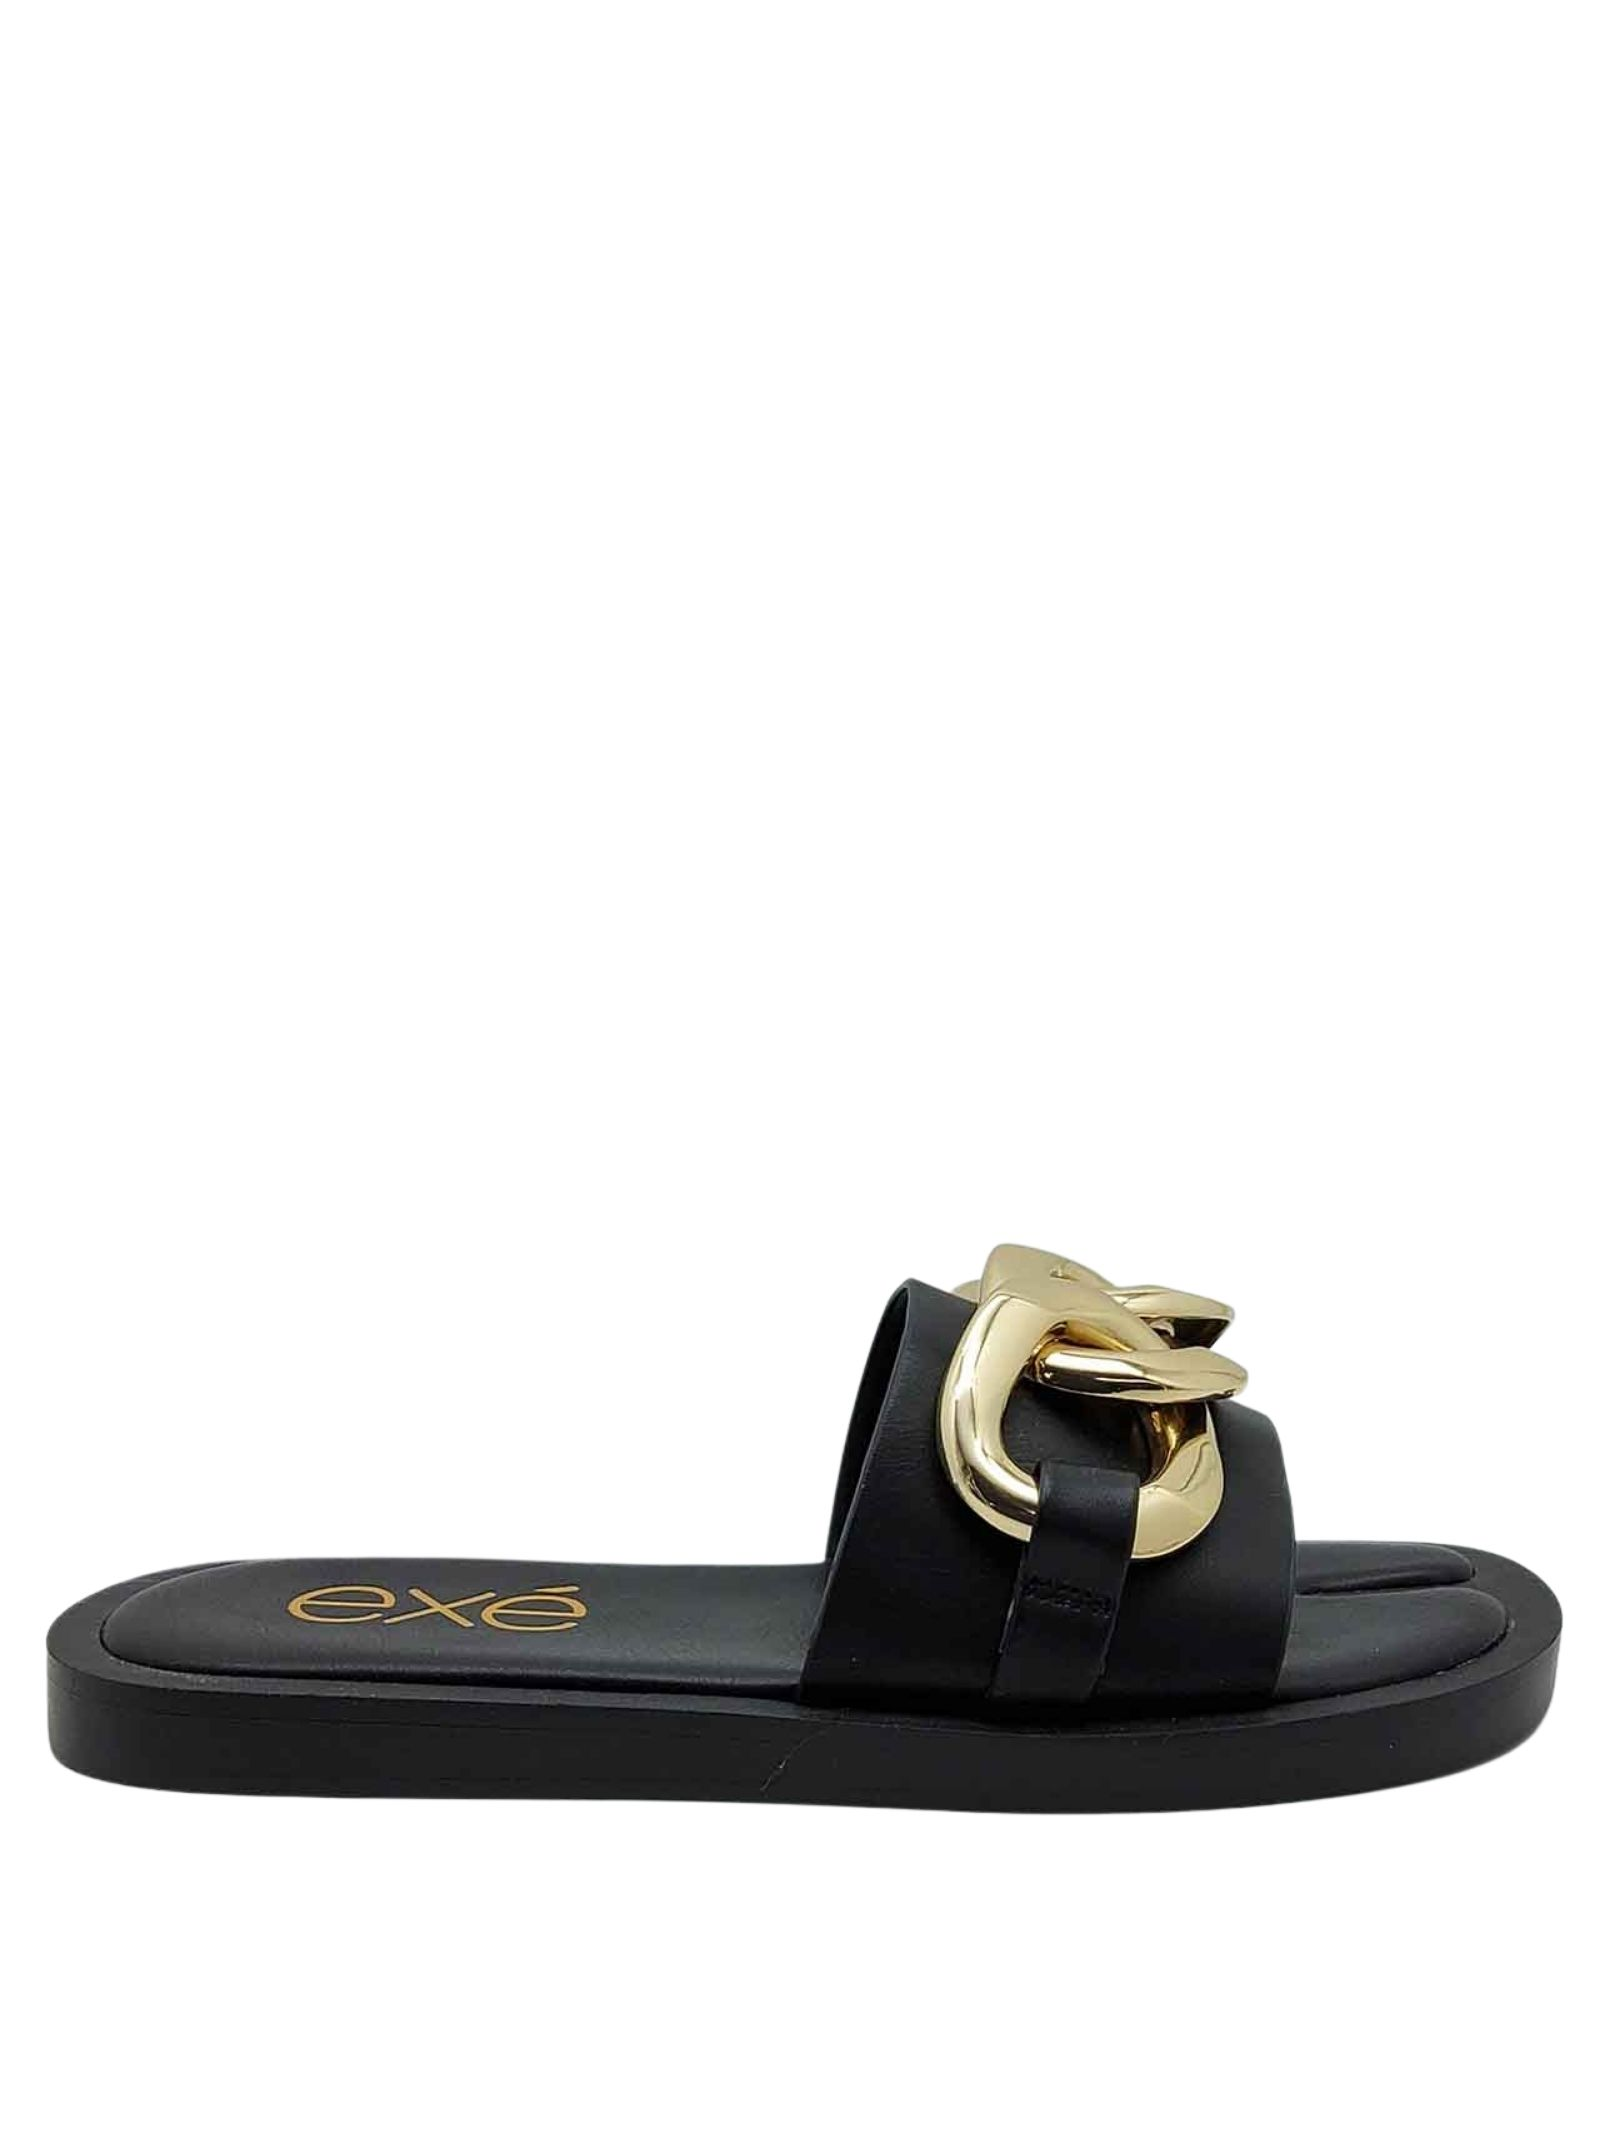 Women's Shoes Sandals in Black Eco Leather with Gold Chain and Low Wedge in Black Rubber Exe | Flat sandals | 273001